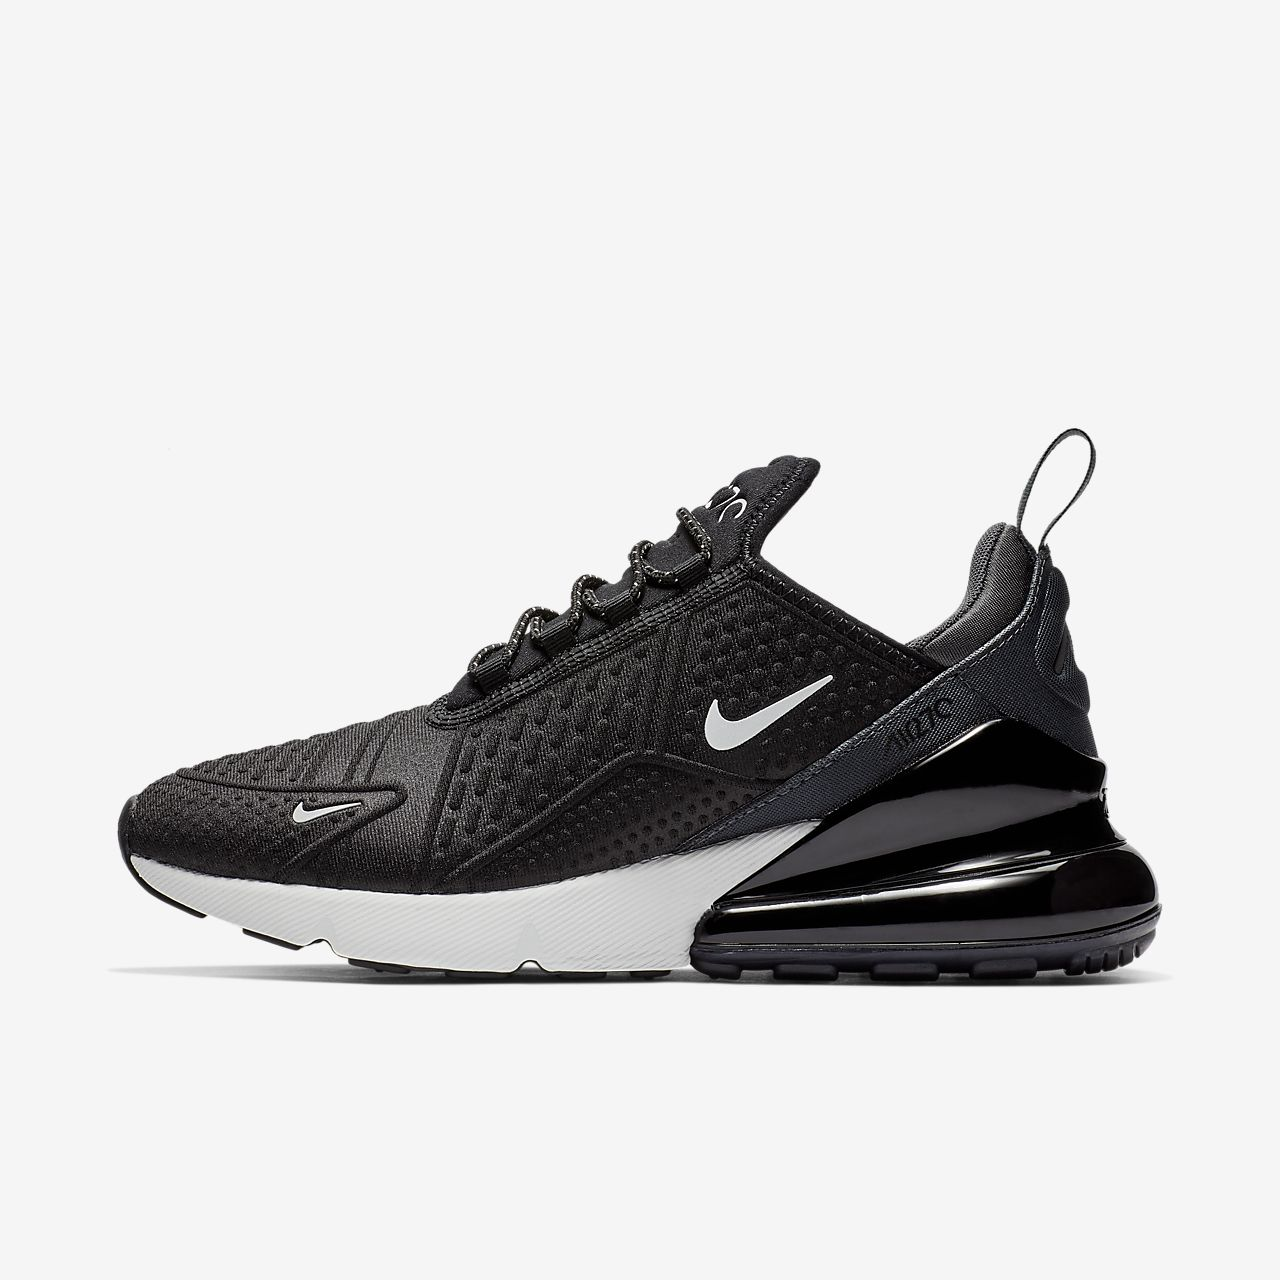 Nike Air Max 270 SE Women's Shoe